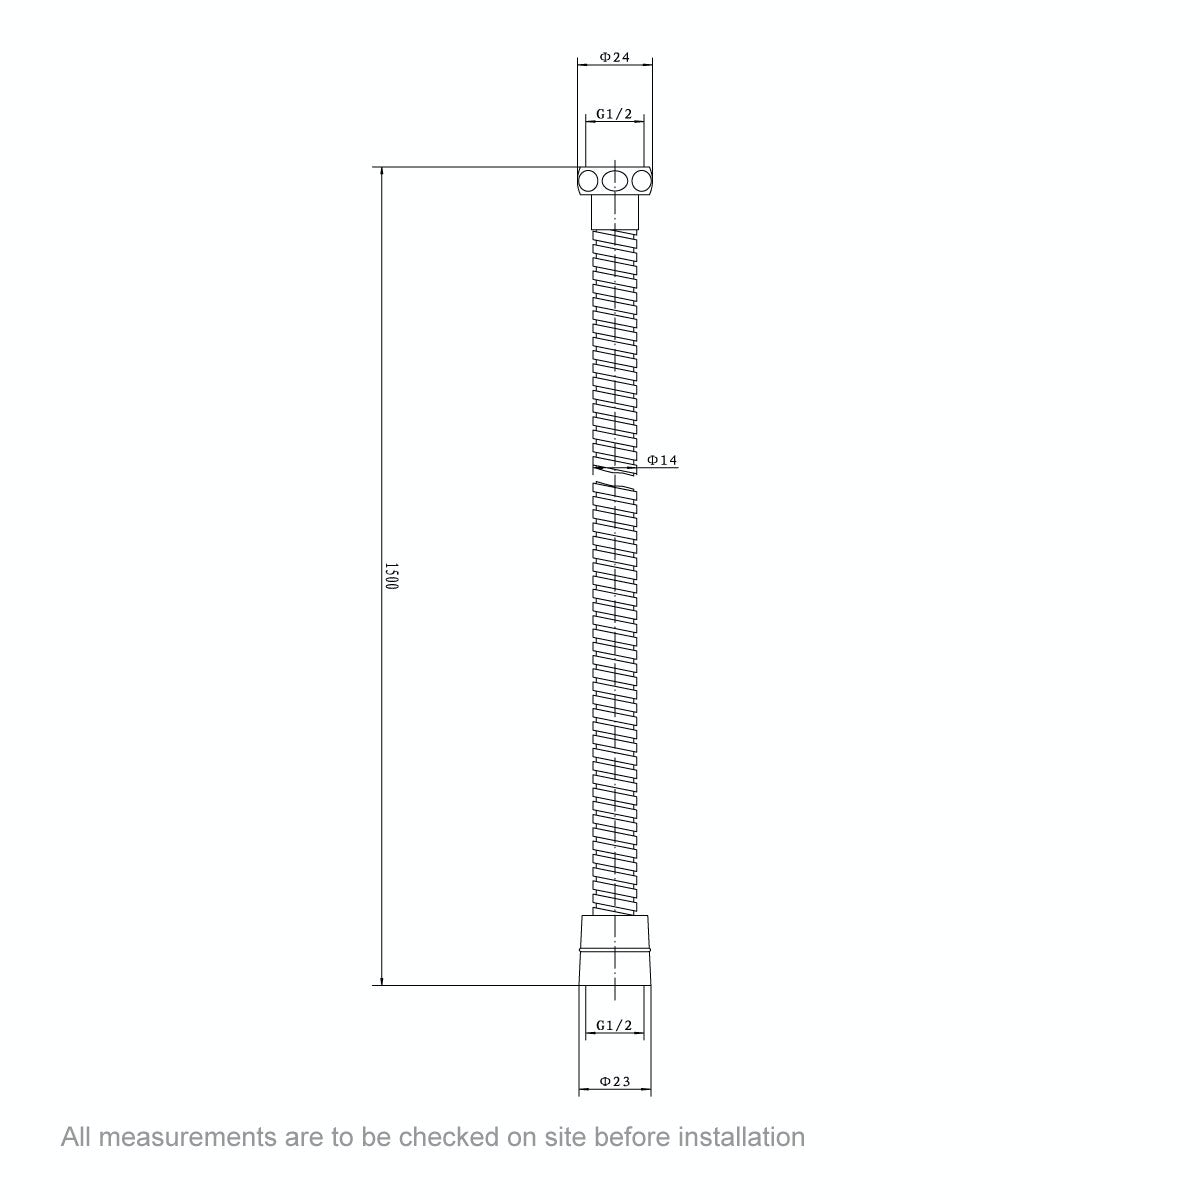 Dimensions for Shower Hose